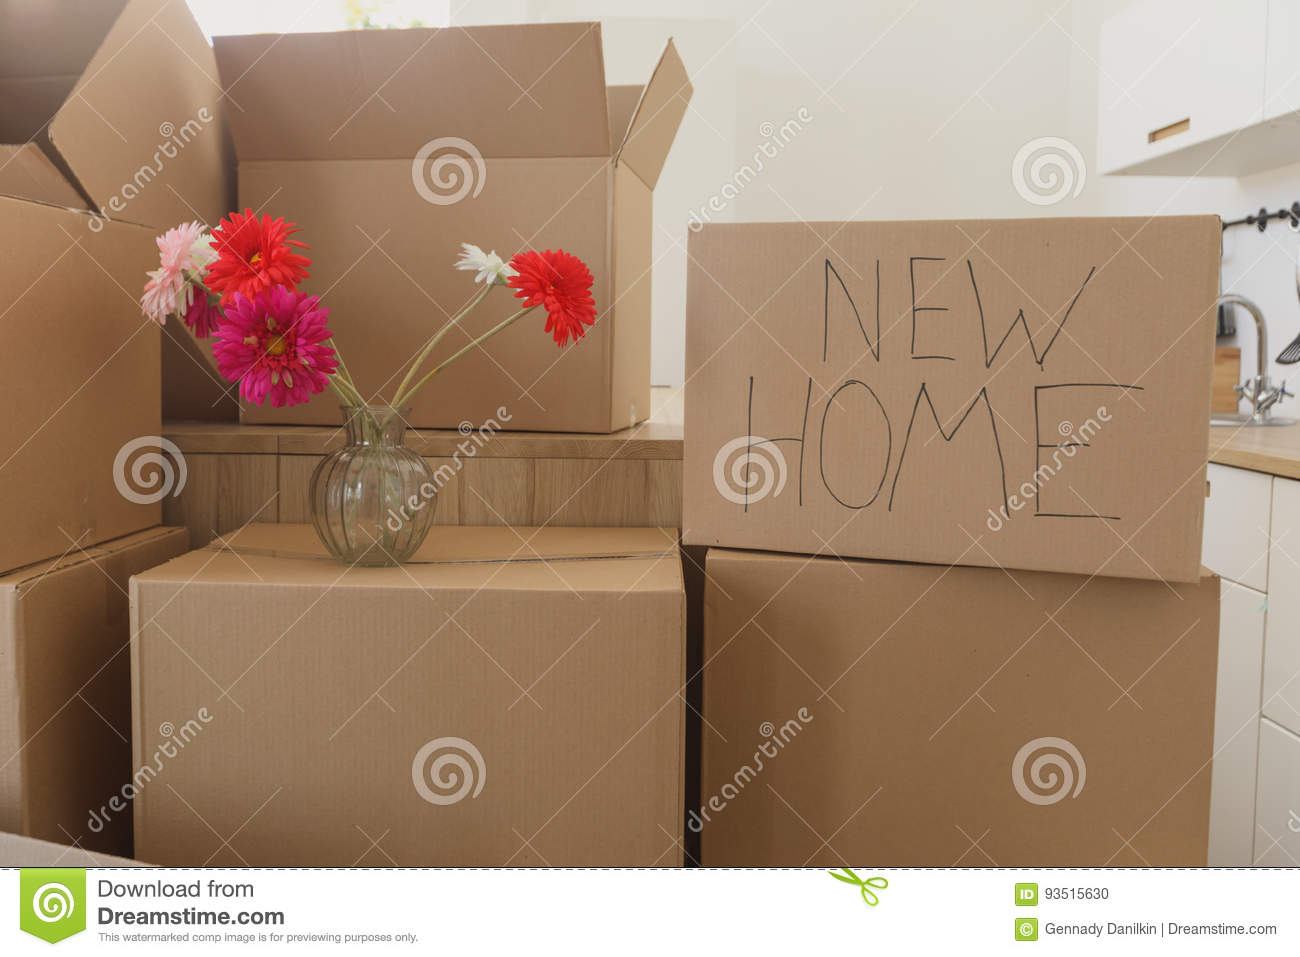 New home owners unpacking boxes, big cardboard boxes in new home. Moving to a new apartment concept